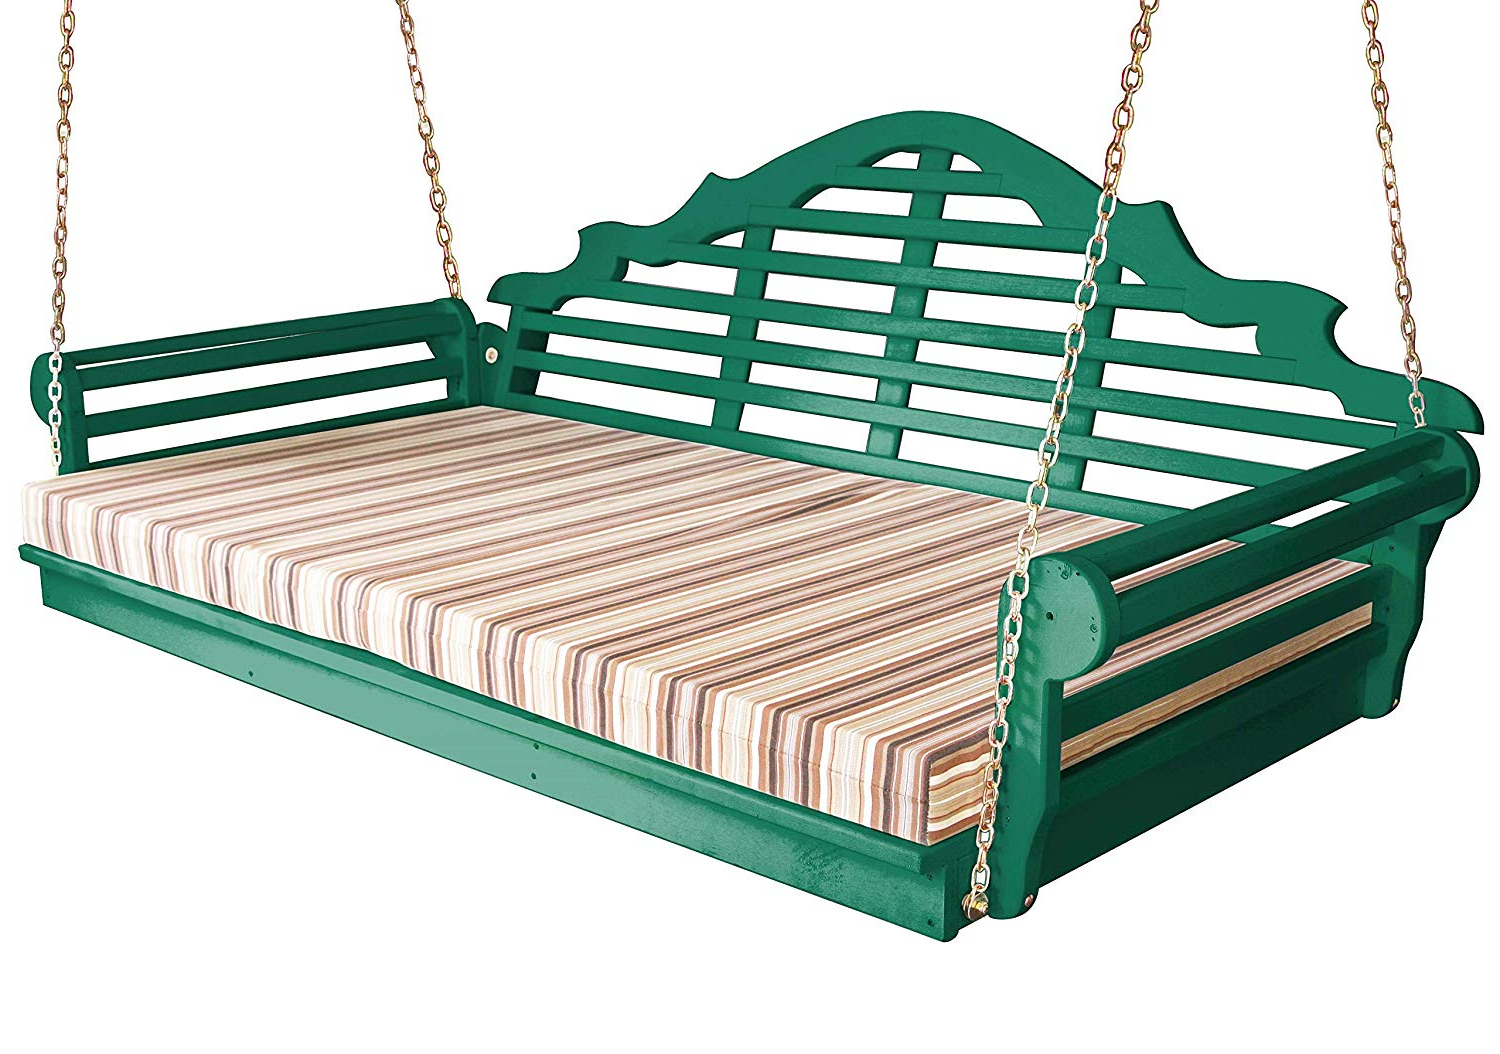 Amazon : Best Porch Swing Bed, Outdoor Swinging Daybed With Newest Day Bed Porch Swings (View 23 of 30)